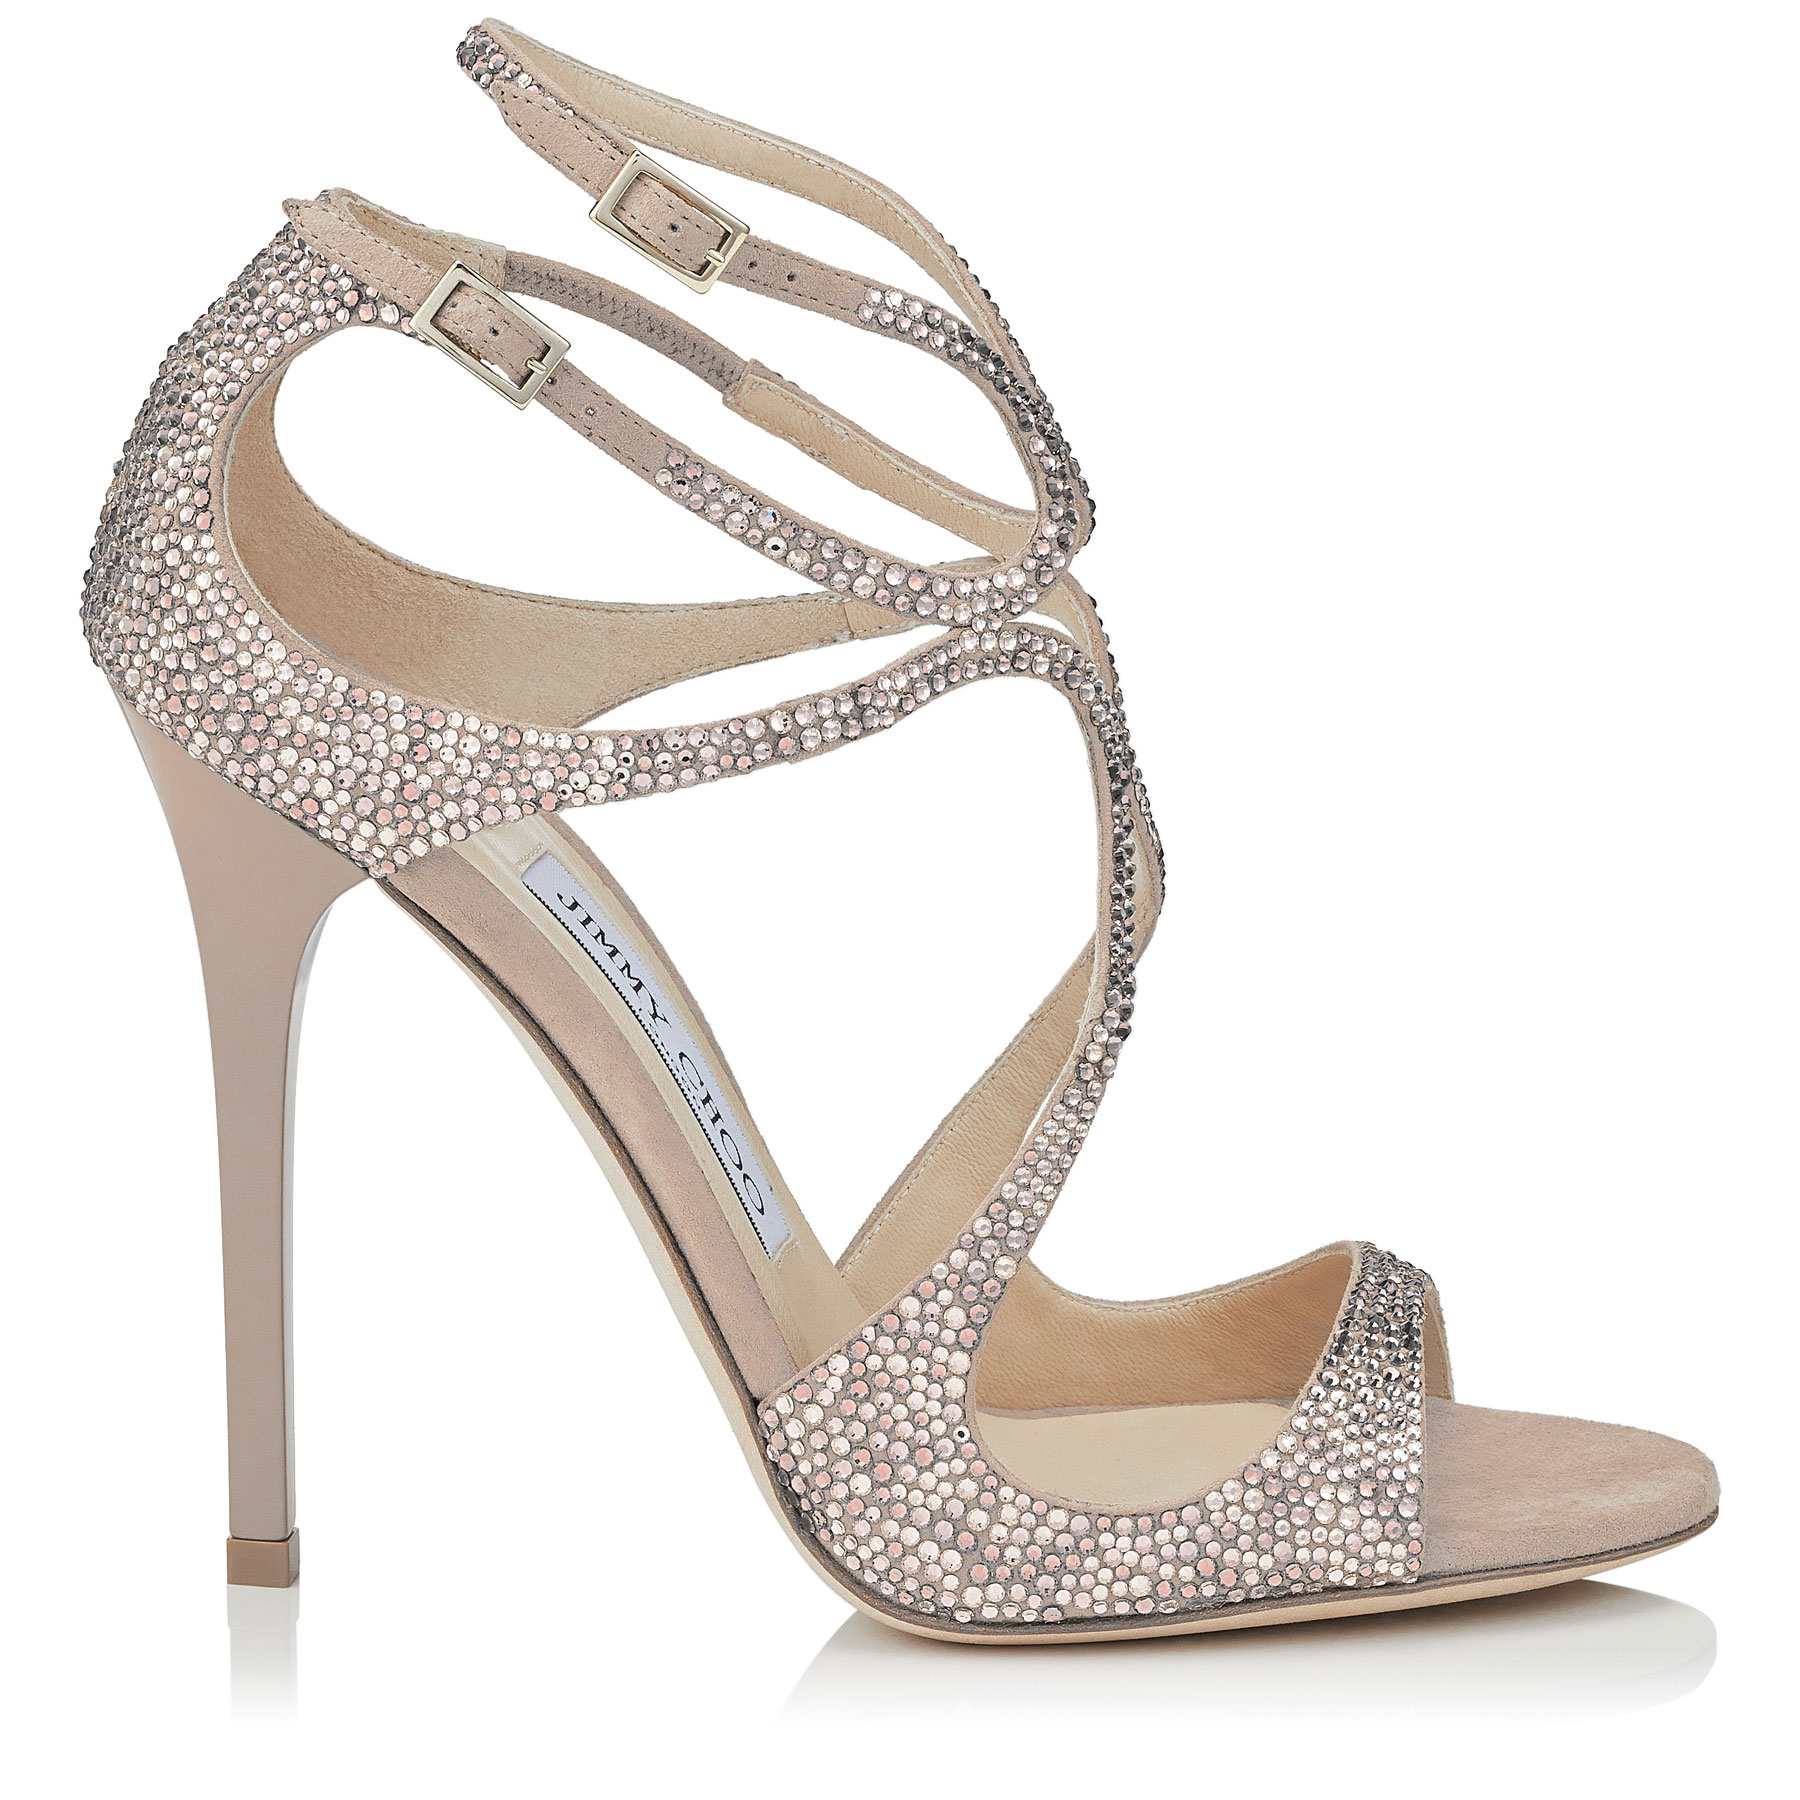 LANCE Ballet Pink Suede Sandals with Hotfix Crystals by Jimmy Choo